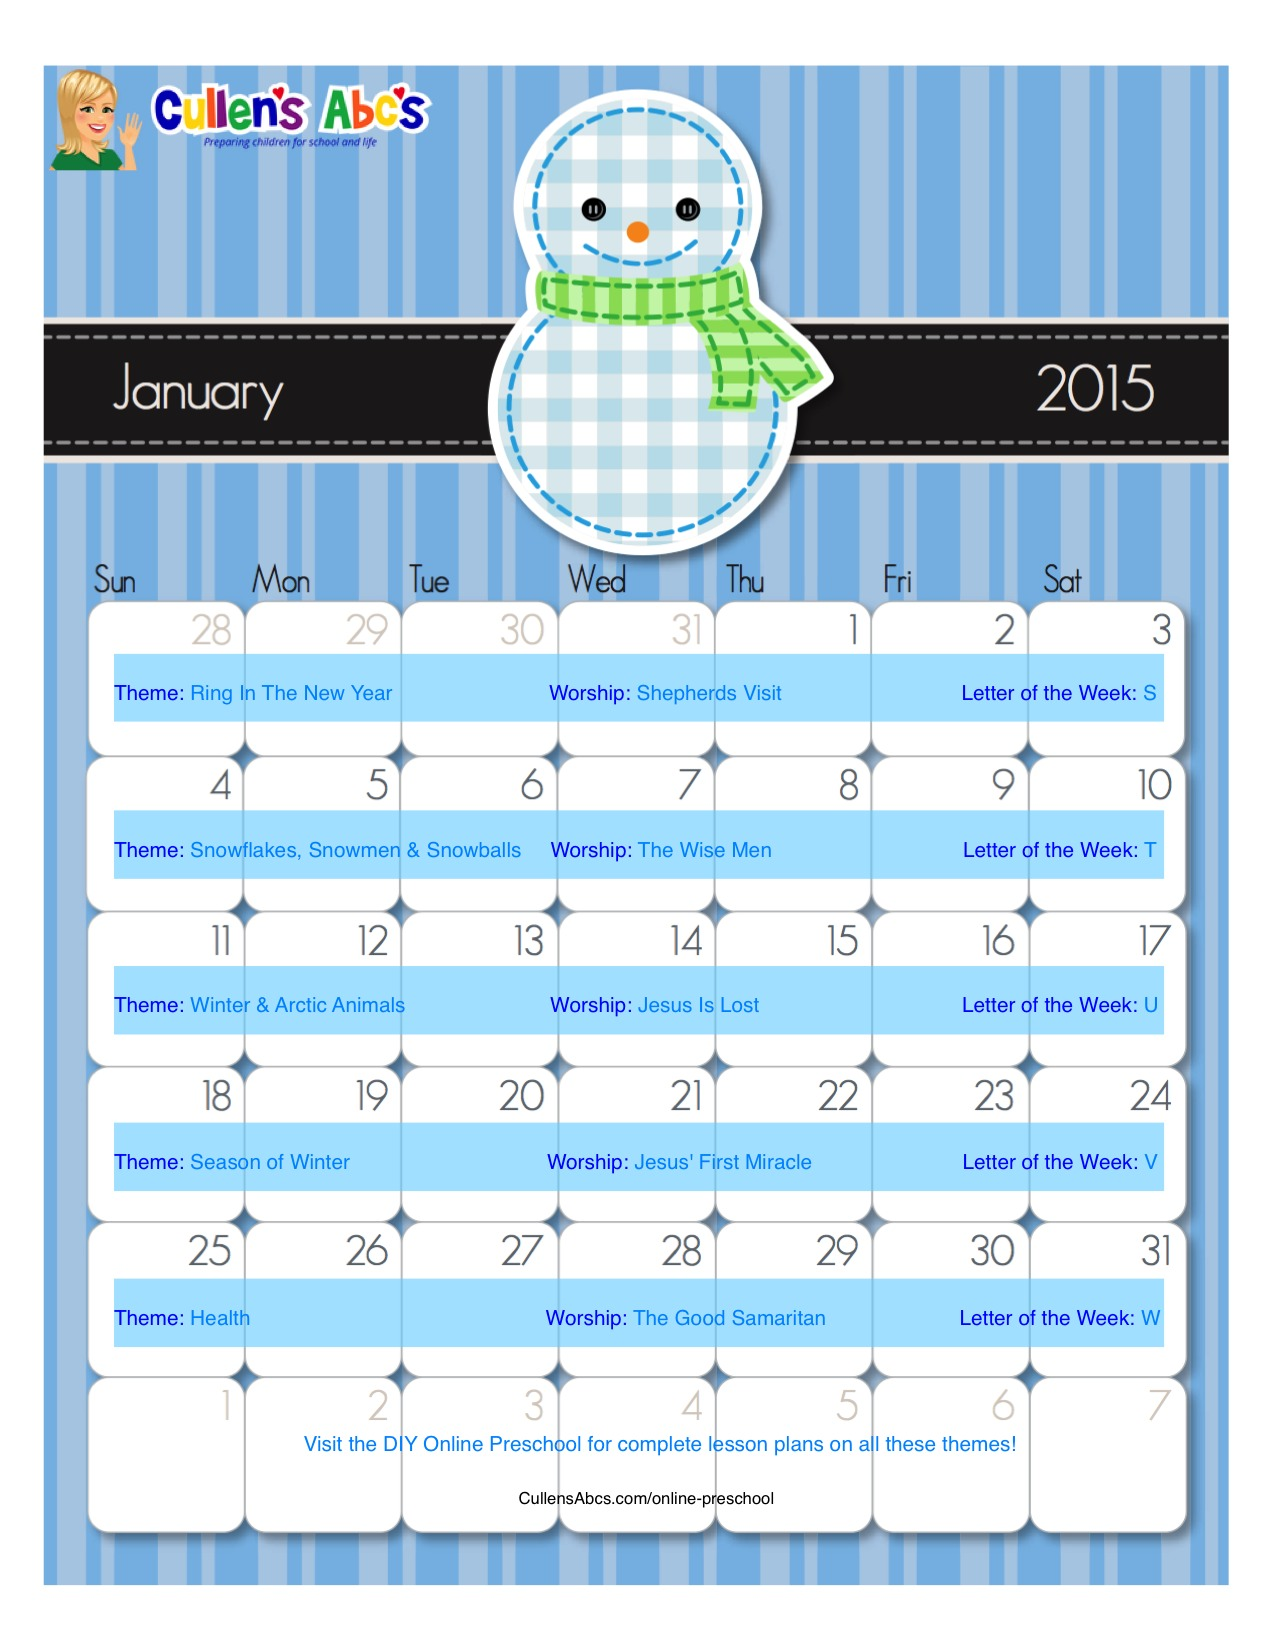 January Online Preschool Calendar 2015